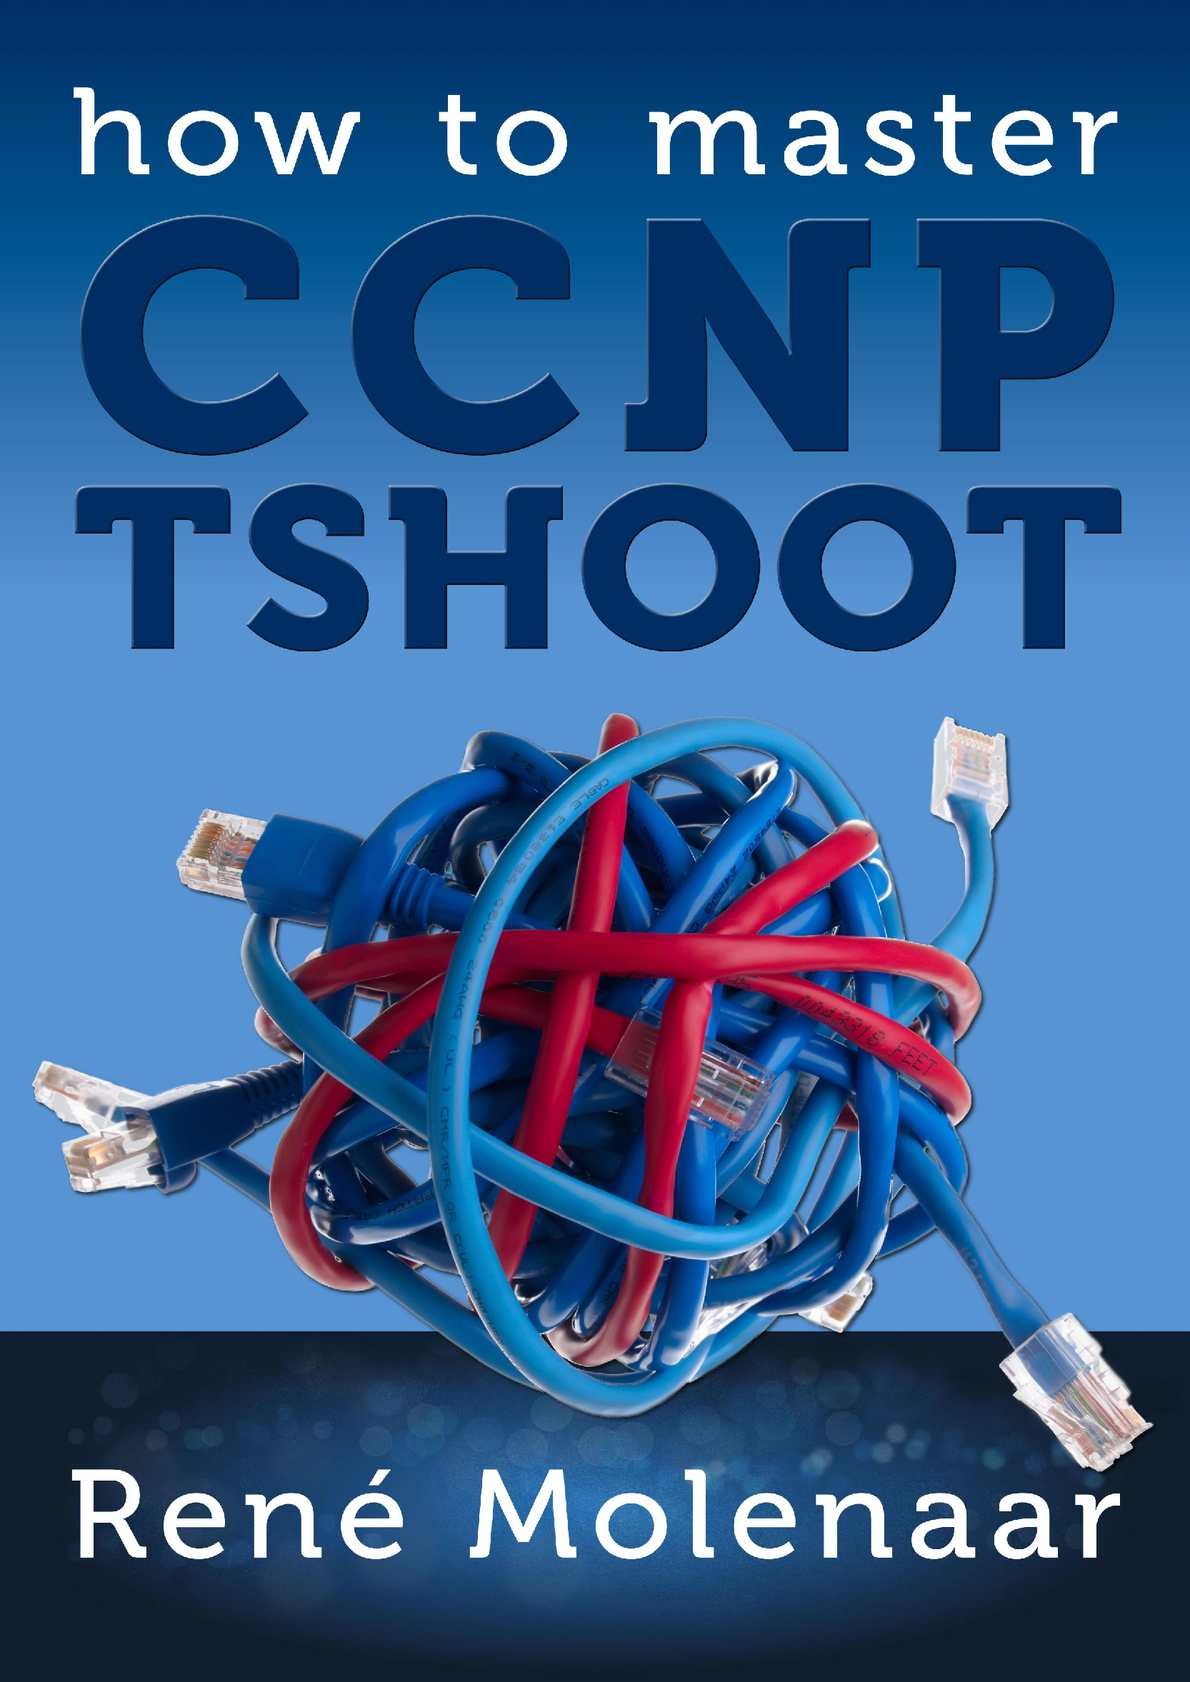 Calaméo - How to master CCNP Troubleshoot